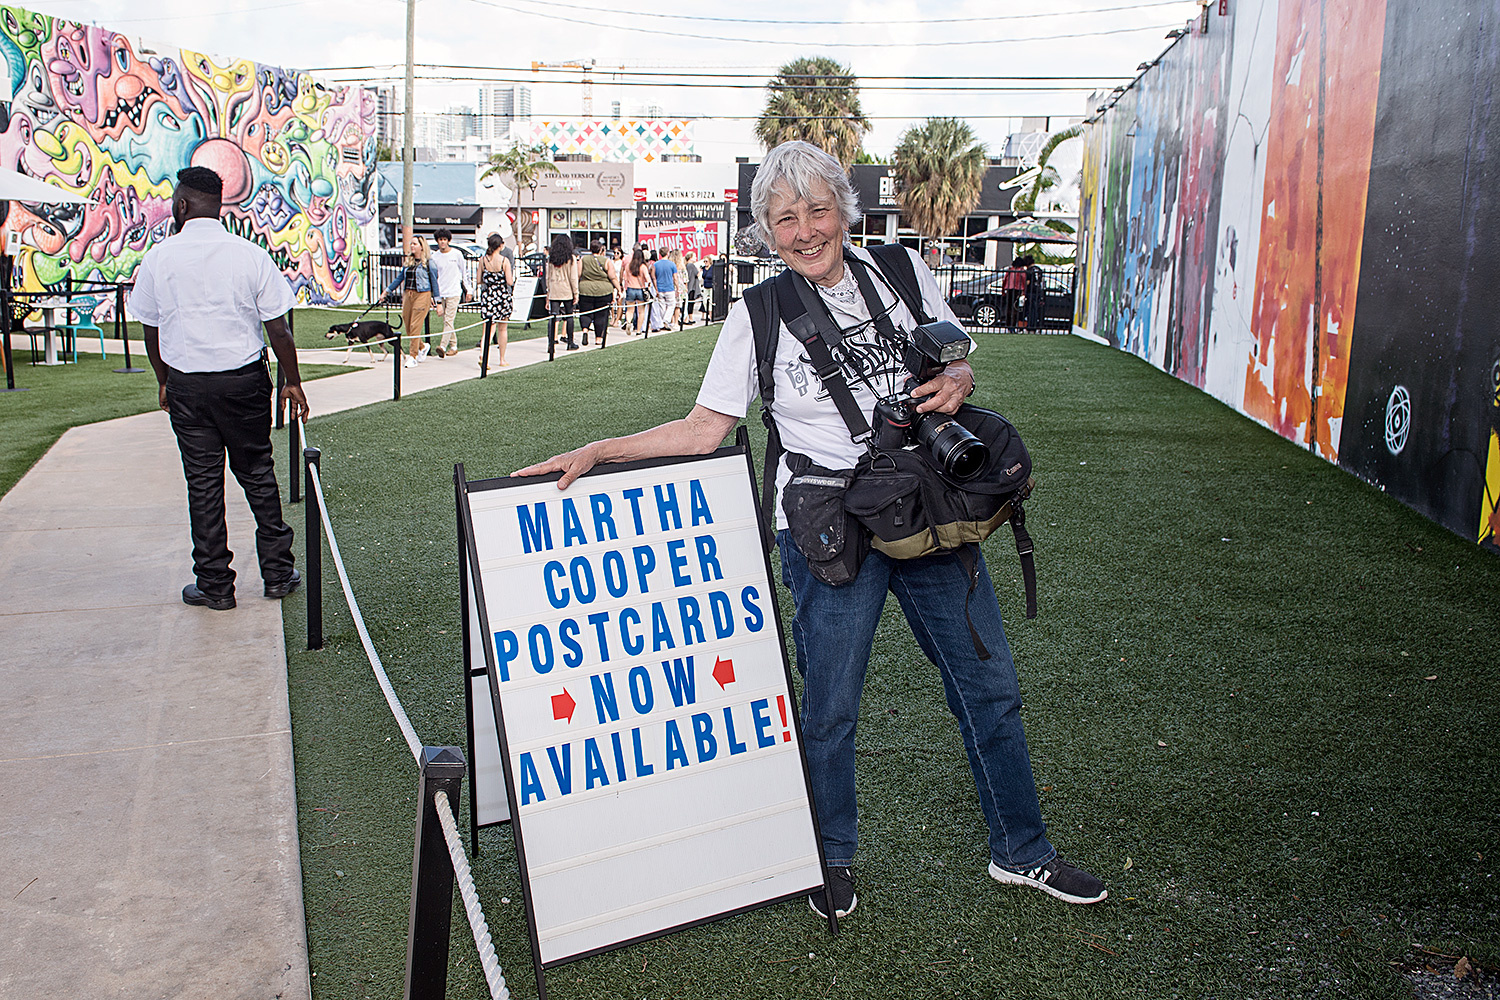 MARTHA COOPER AT THE WYNWOOD WALLS